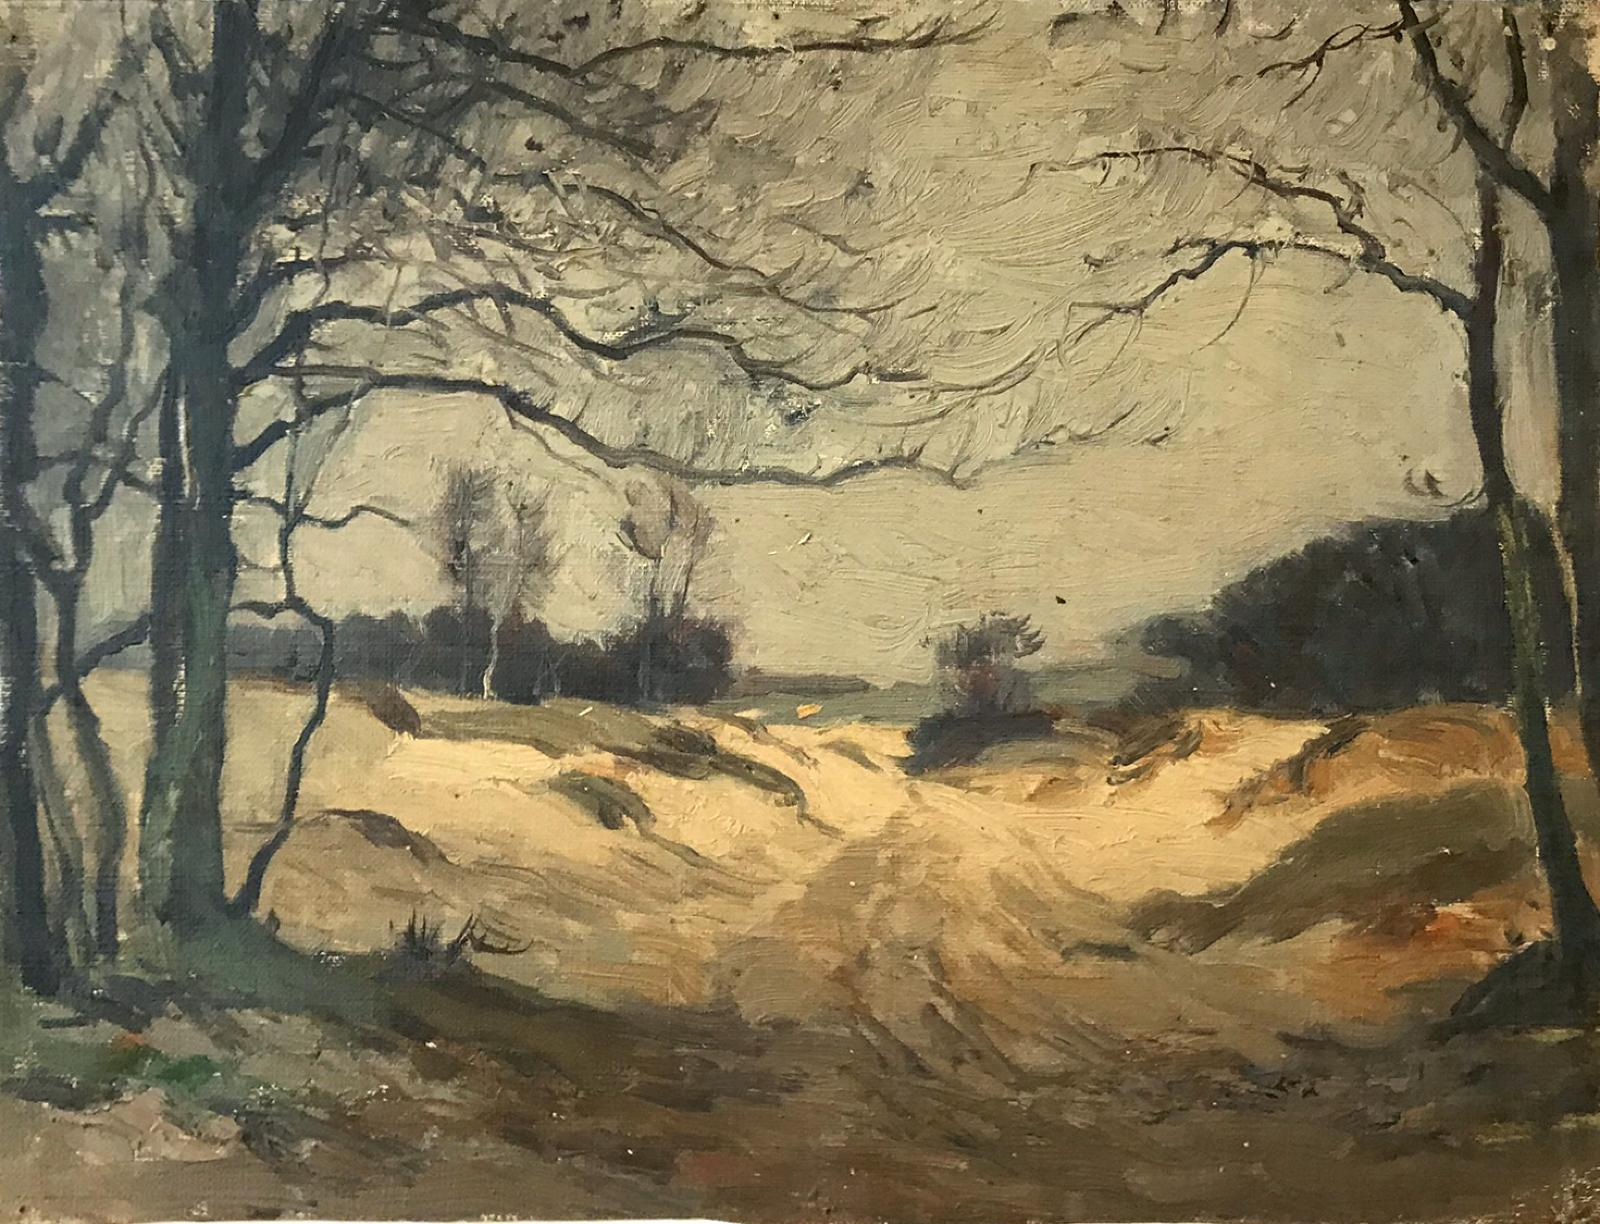 Oil on canvas image of a landscape with dark grey barren trees.